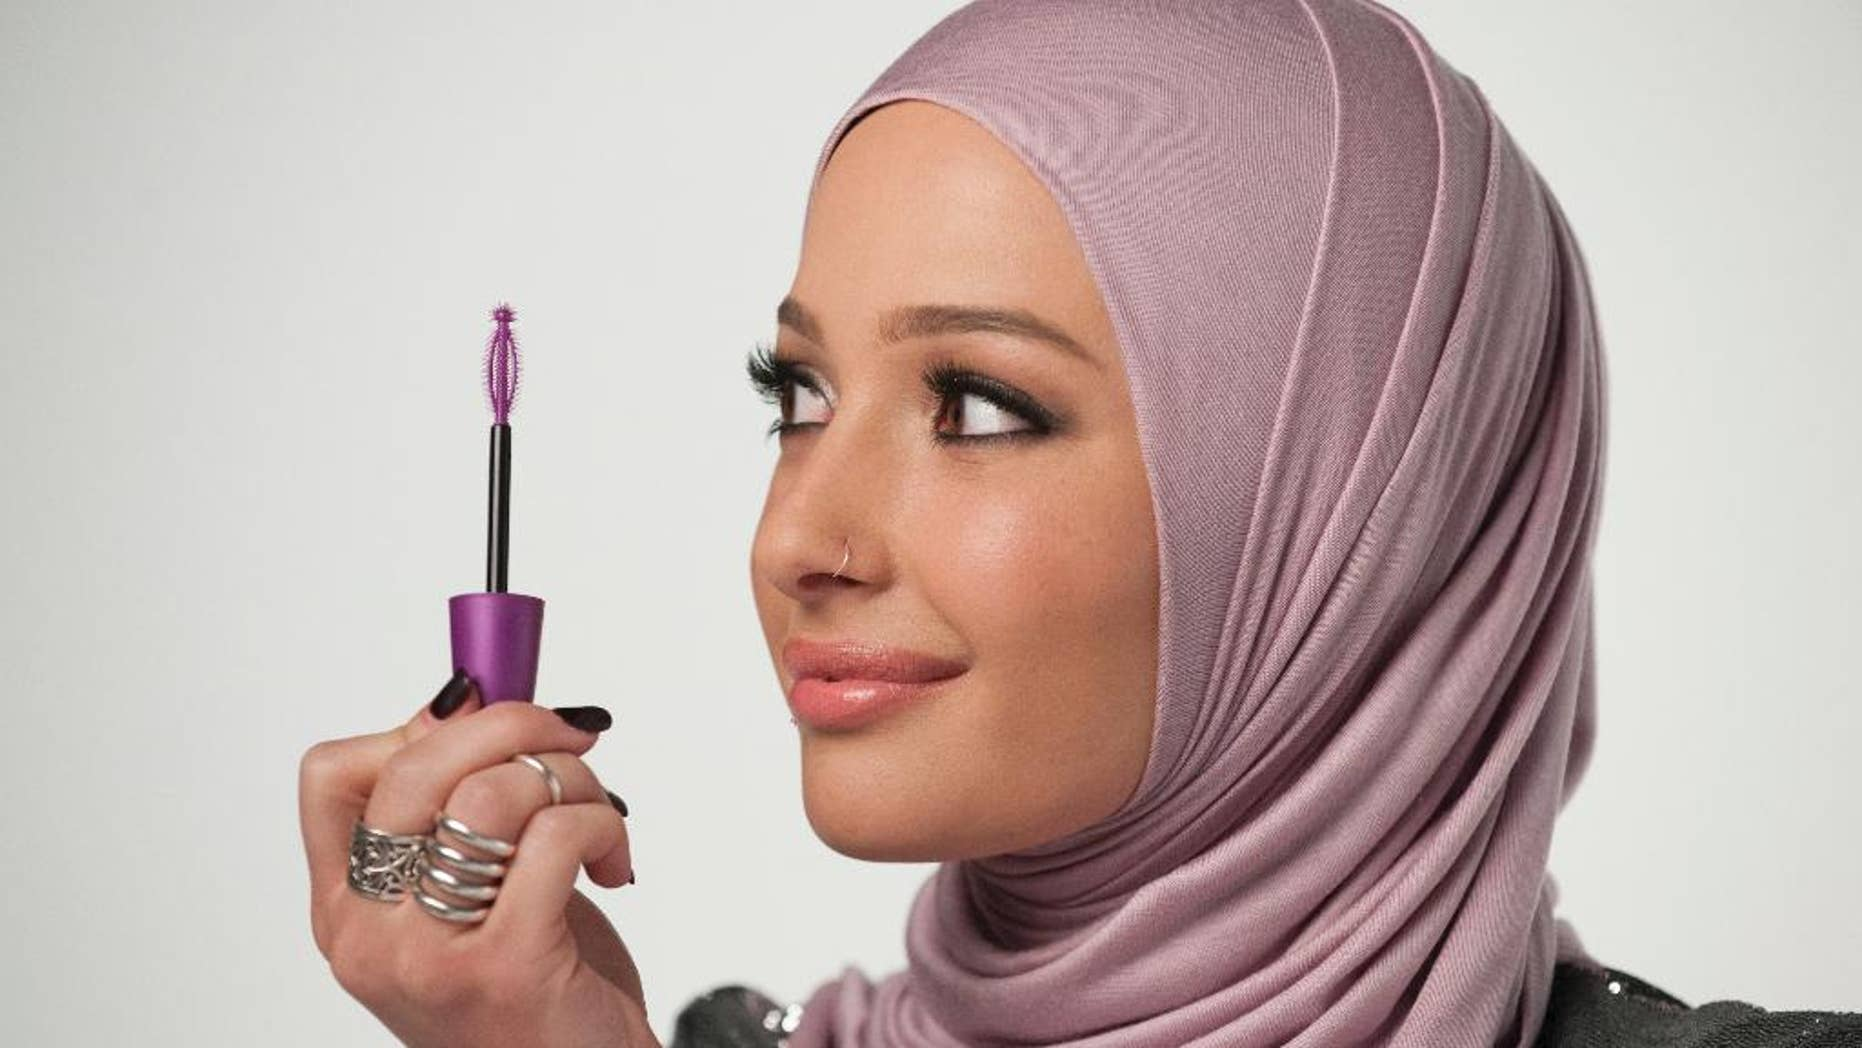 In this undated photo provided by CoverGirl, beauty blogger Nura Afia poses for a photo. CoverGirl is featuring a woman wearing a hijab in its advertising for the first time in the makeup line's history. (Lacey Terrell/CoverGirl via AP)